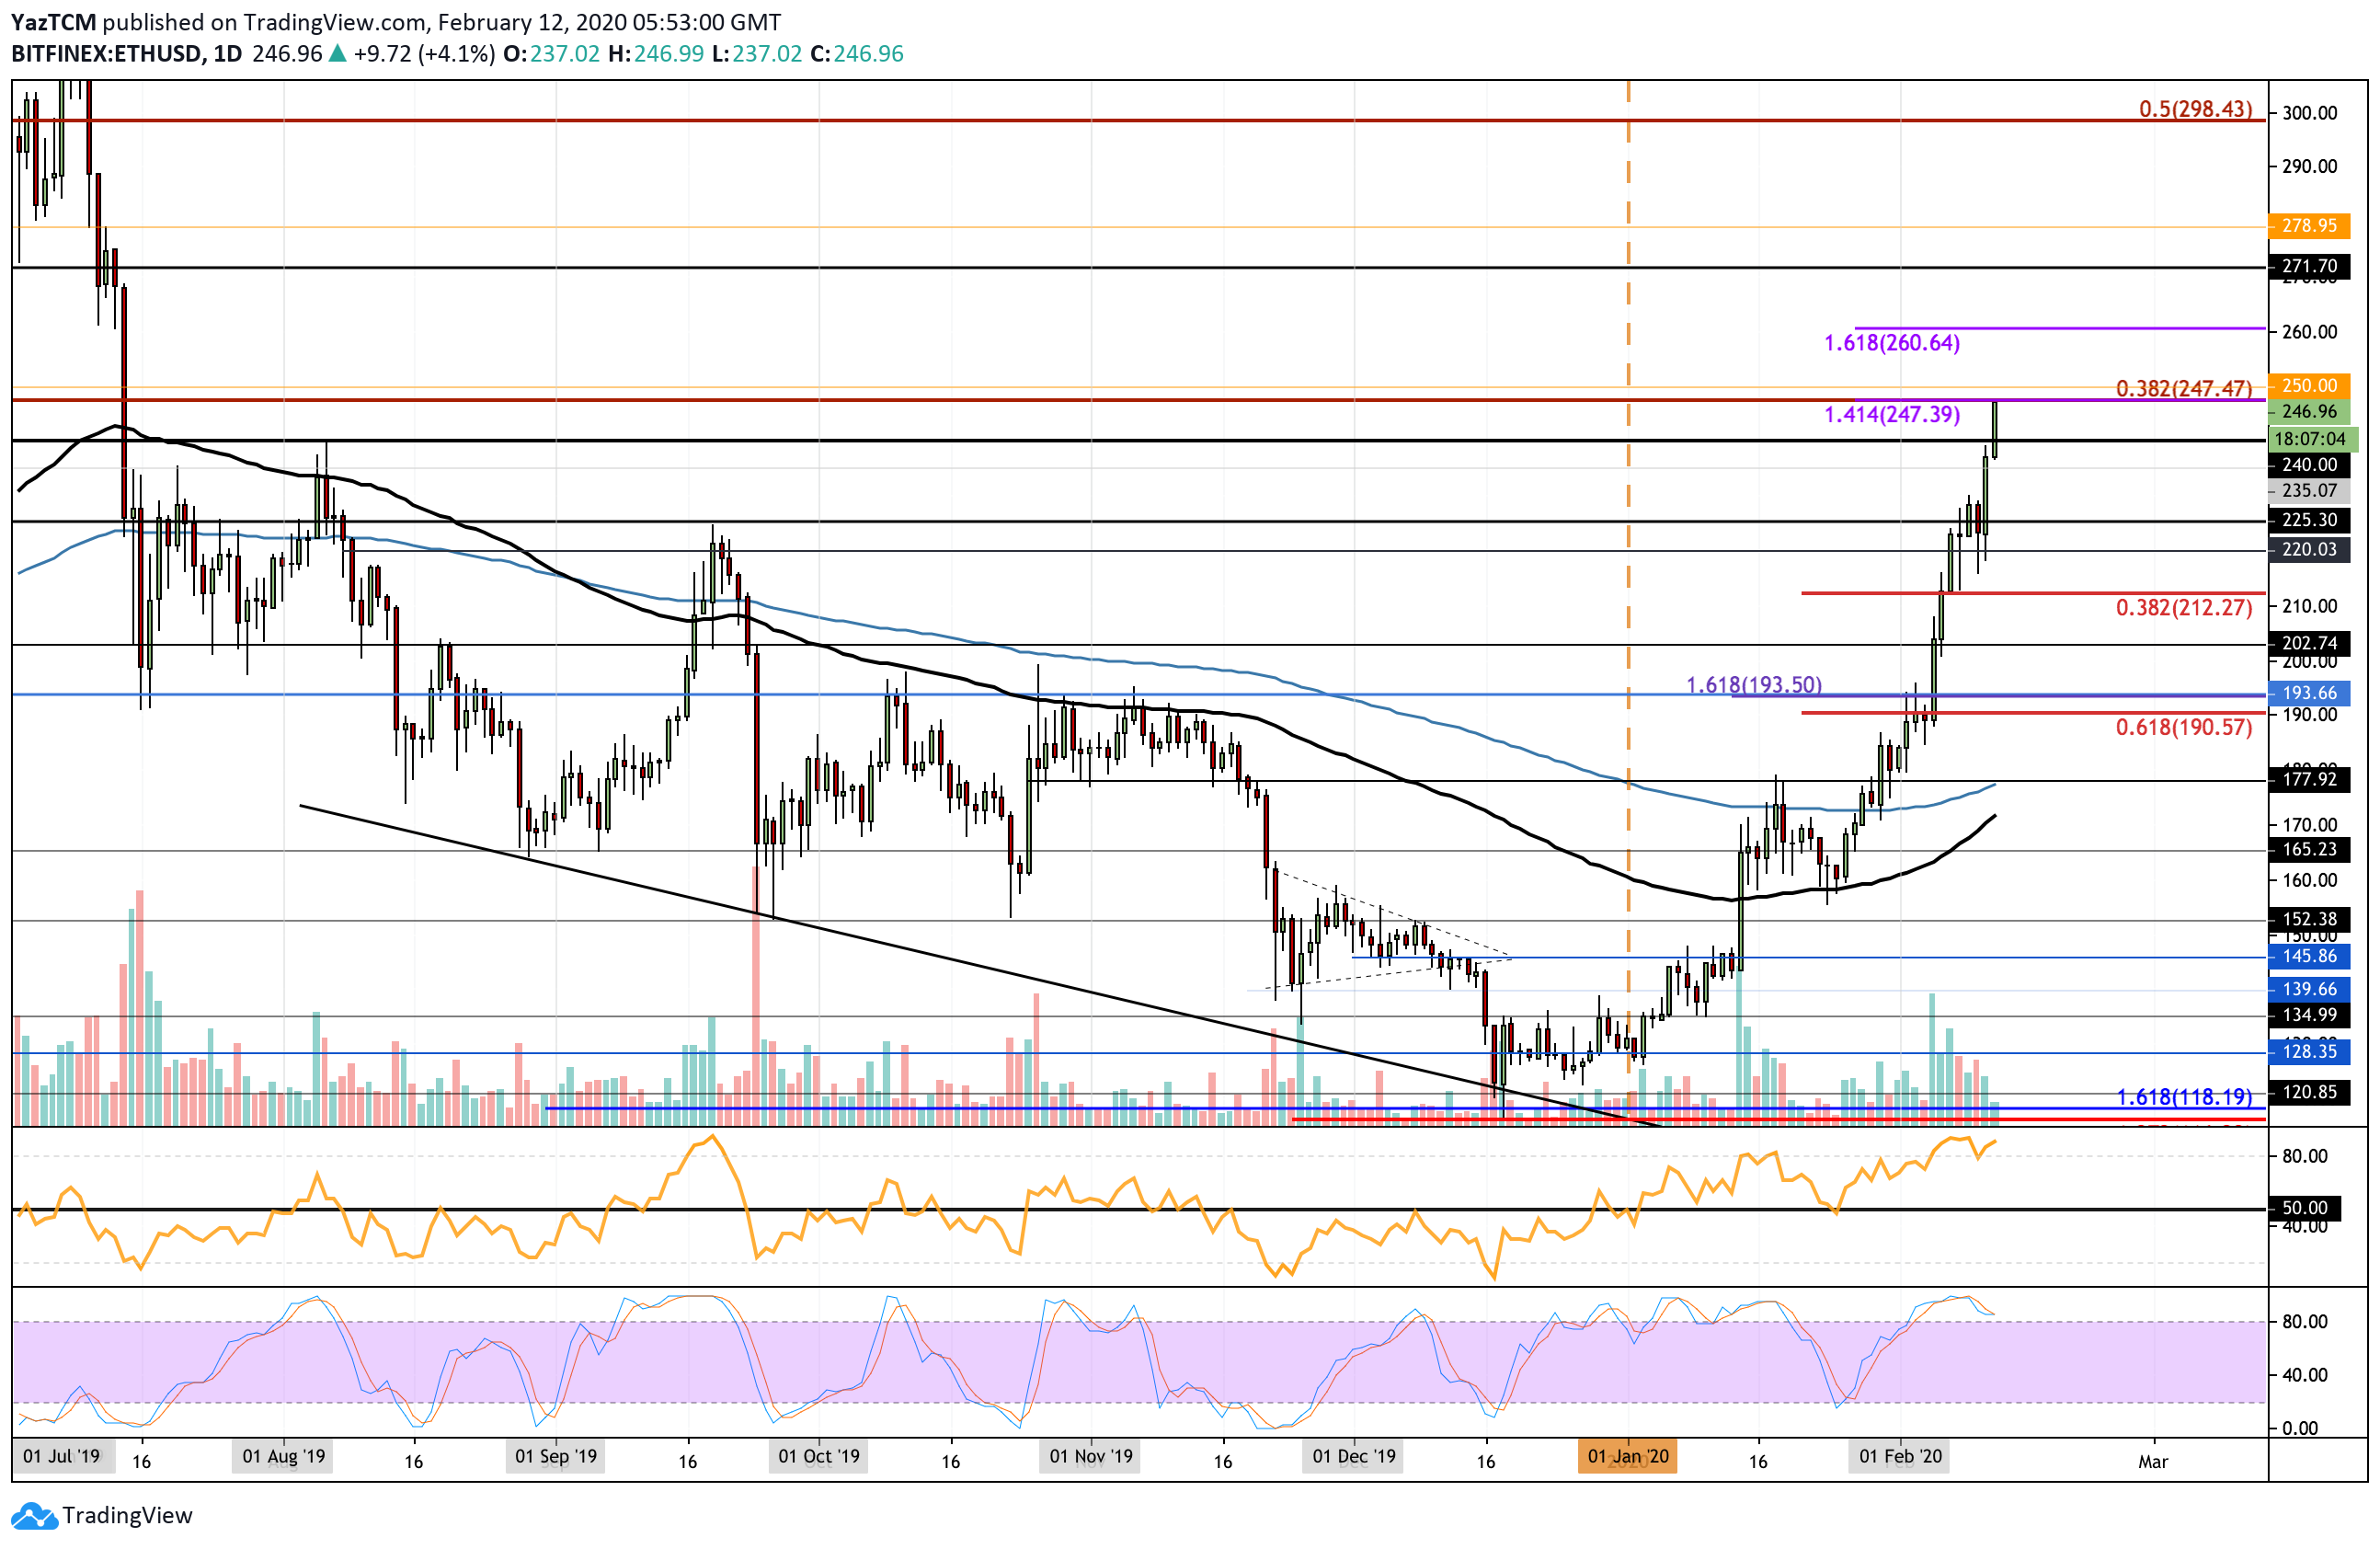 Ethereum Price Analysis: How Far Above 0 Will ETH Travel?